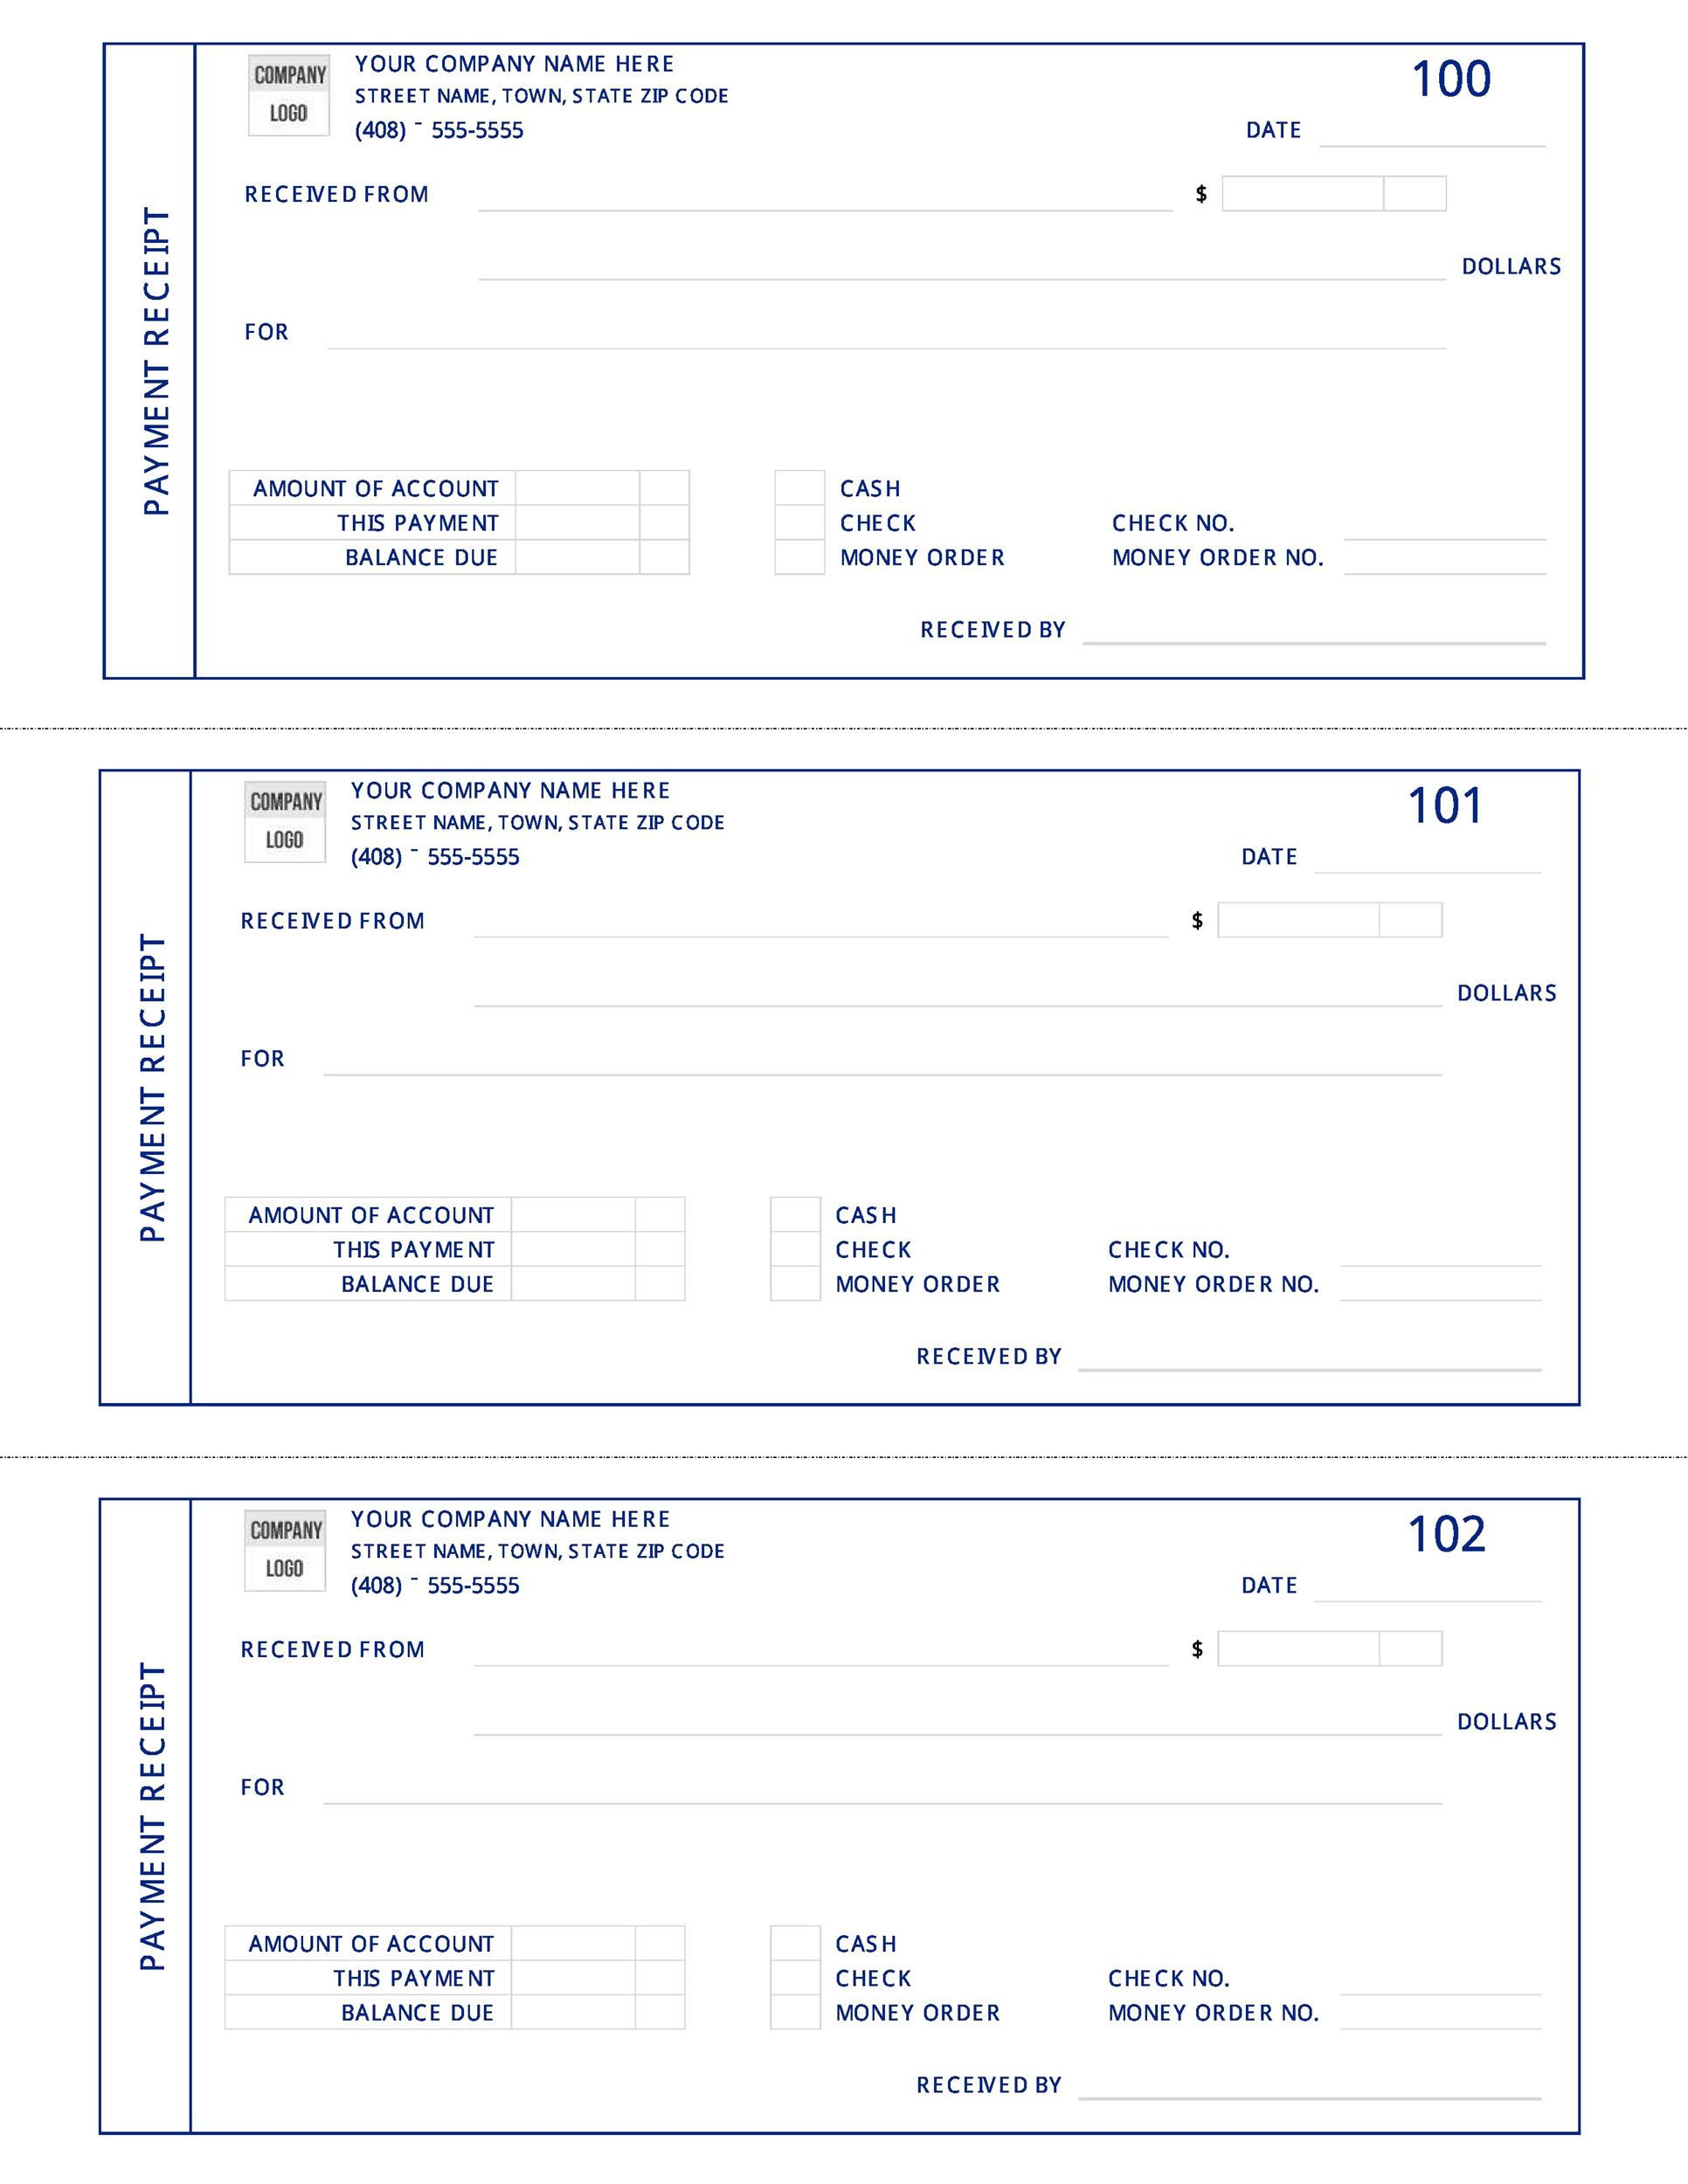 50 Free Receipt Templates Cash Sales Donation Taxi – Sample Receipt of Payment Template